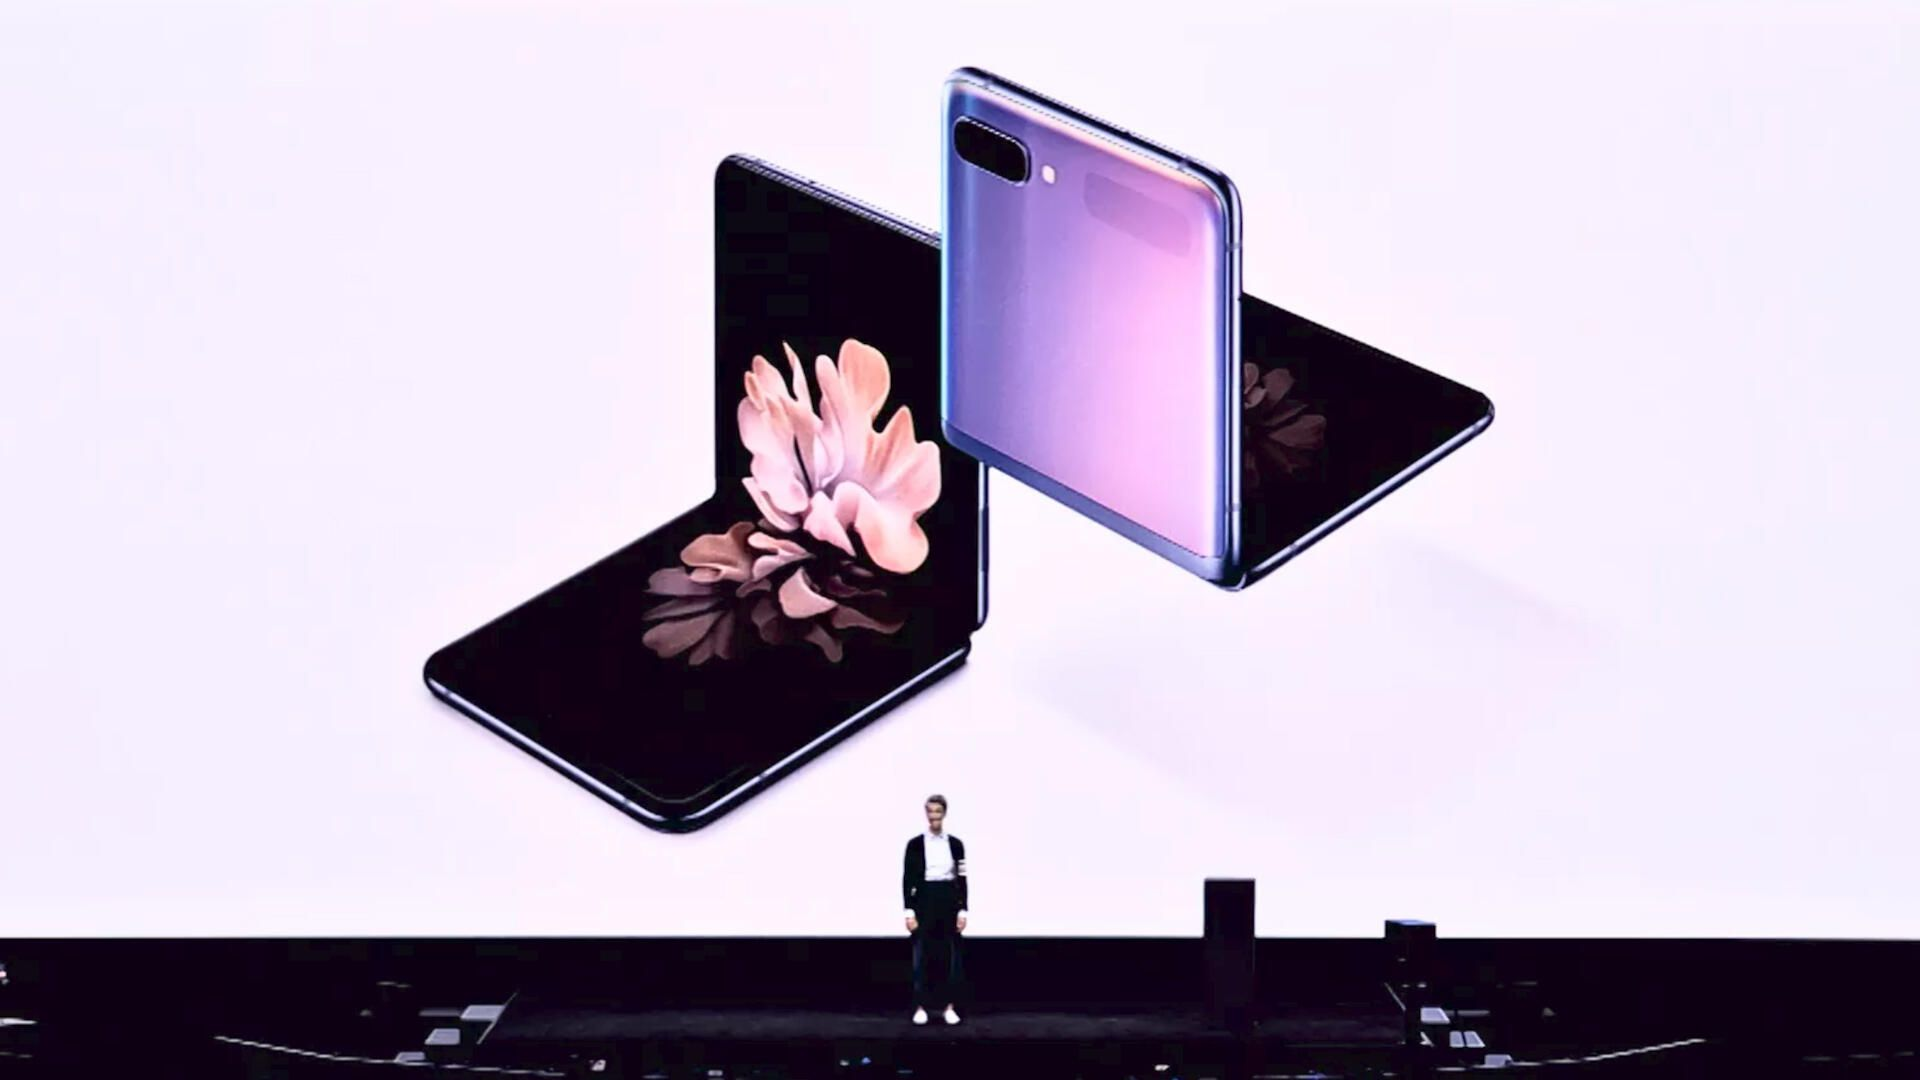 , All the news from Samsung's Unpacked event                                                                  FTC orders Apple, Google, other tech giants to hand over acquisition info                                                                  Lyft's fourth-quarter earnings show $1 billion in revenue                                                                  Coronavirus jolts tech firms as outbreak spreads: MWC bars some visitors from China                                                                  MWC and coronavirus: More companies withdraw despite health measures                                                                  Samsung takes precautions for coronavirus at Unpacked 2020                                                                  Royole brings FlexPai 2 foldable phone launch forward as it drops out of MWC                                                                  Facebook suspends MWC plans due to coronavirus risk                                                                  With the T-Mobile deal nearing completion, it's time we say so long to Sprint                                                                  Samsung reveals new foldable phone, Motorola Razr reviews are in                                                                  Google HR chief Eileen Naughton to step down amid employee tensions                                                                  Uber, Postmates dealt blow as California judge denies injunction over gig worker law – Source CNET Tech, iBSC Technologies - learning management services, LMS, Wordpress, CMS, Moodle, IT, Email, Web Hosting, Cloud Server,Cloud Computing